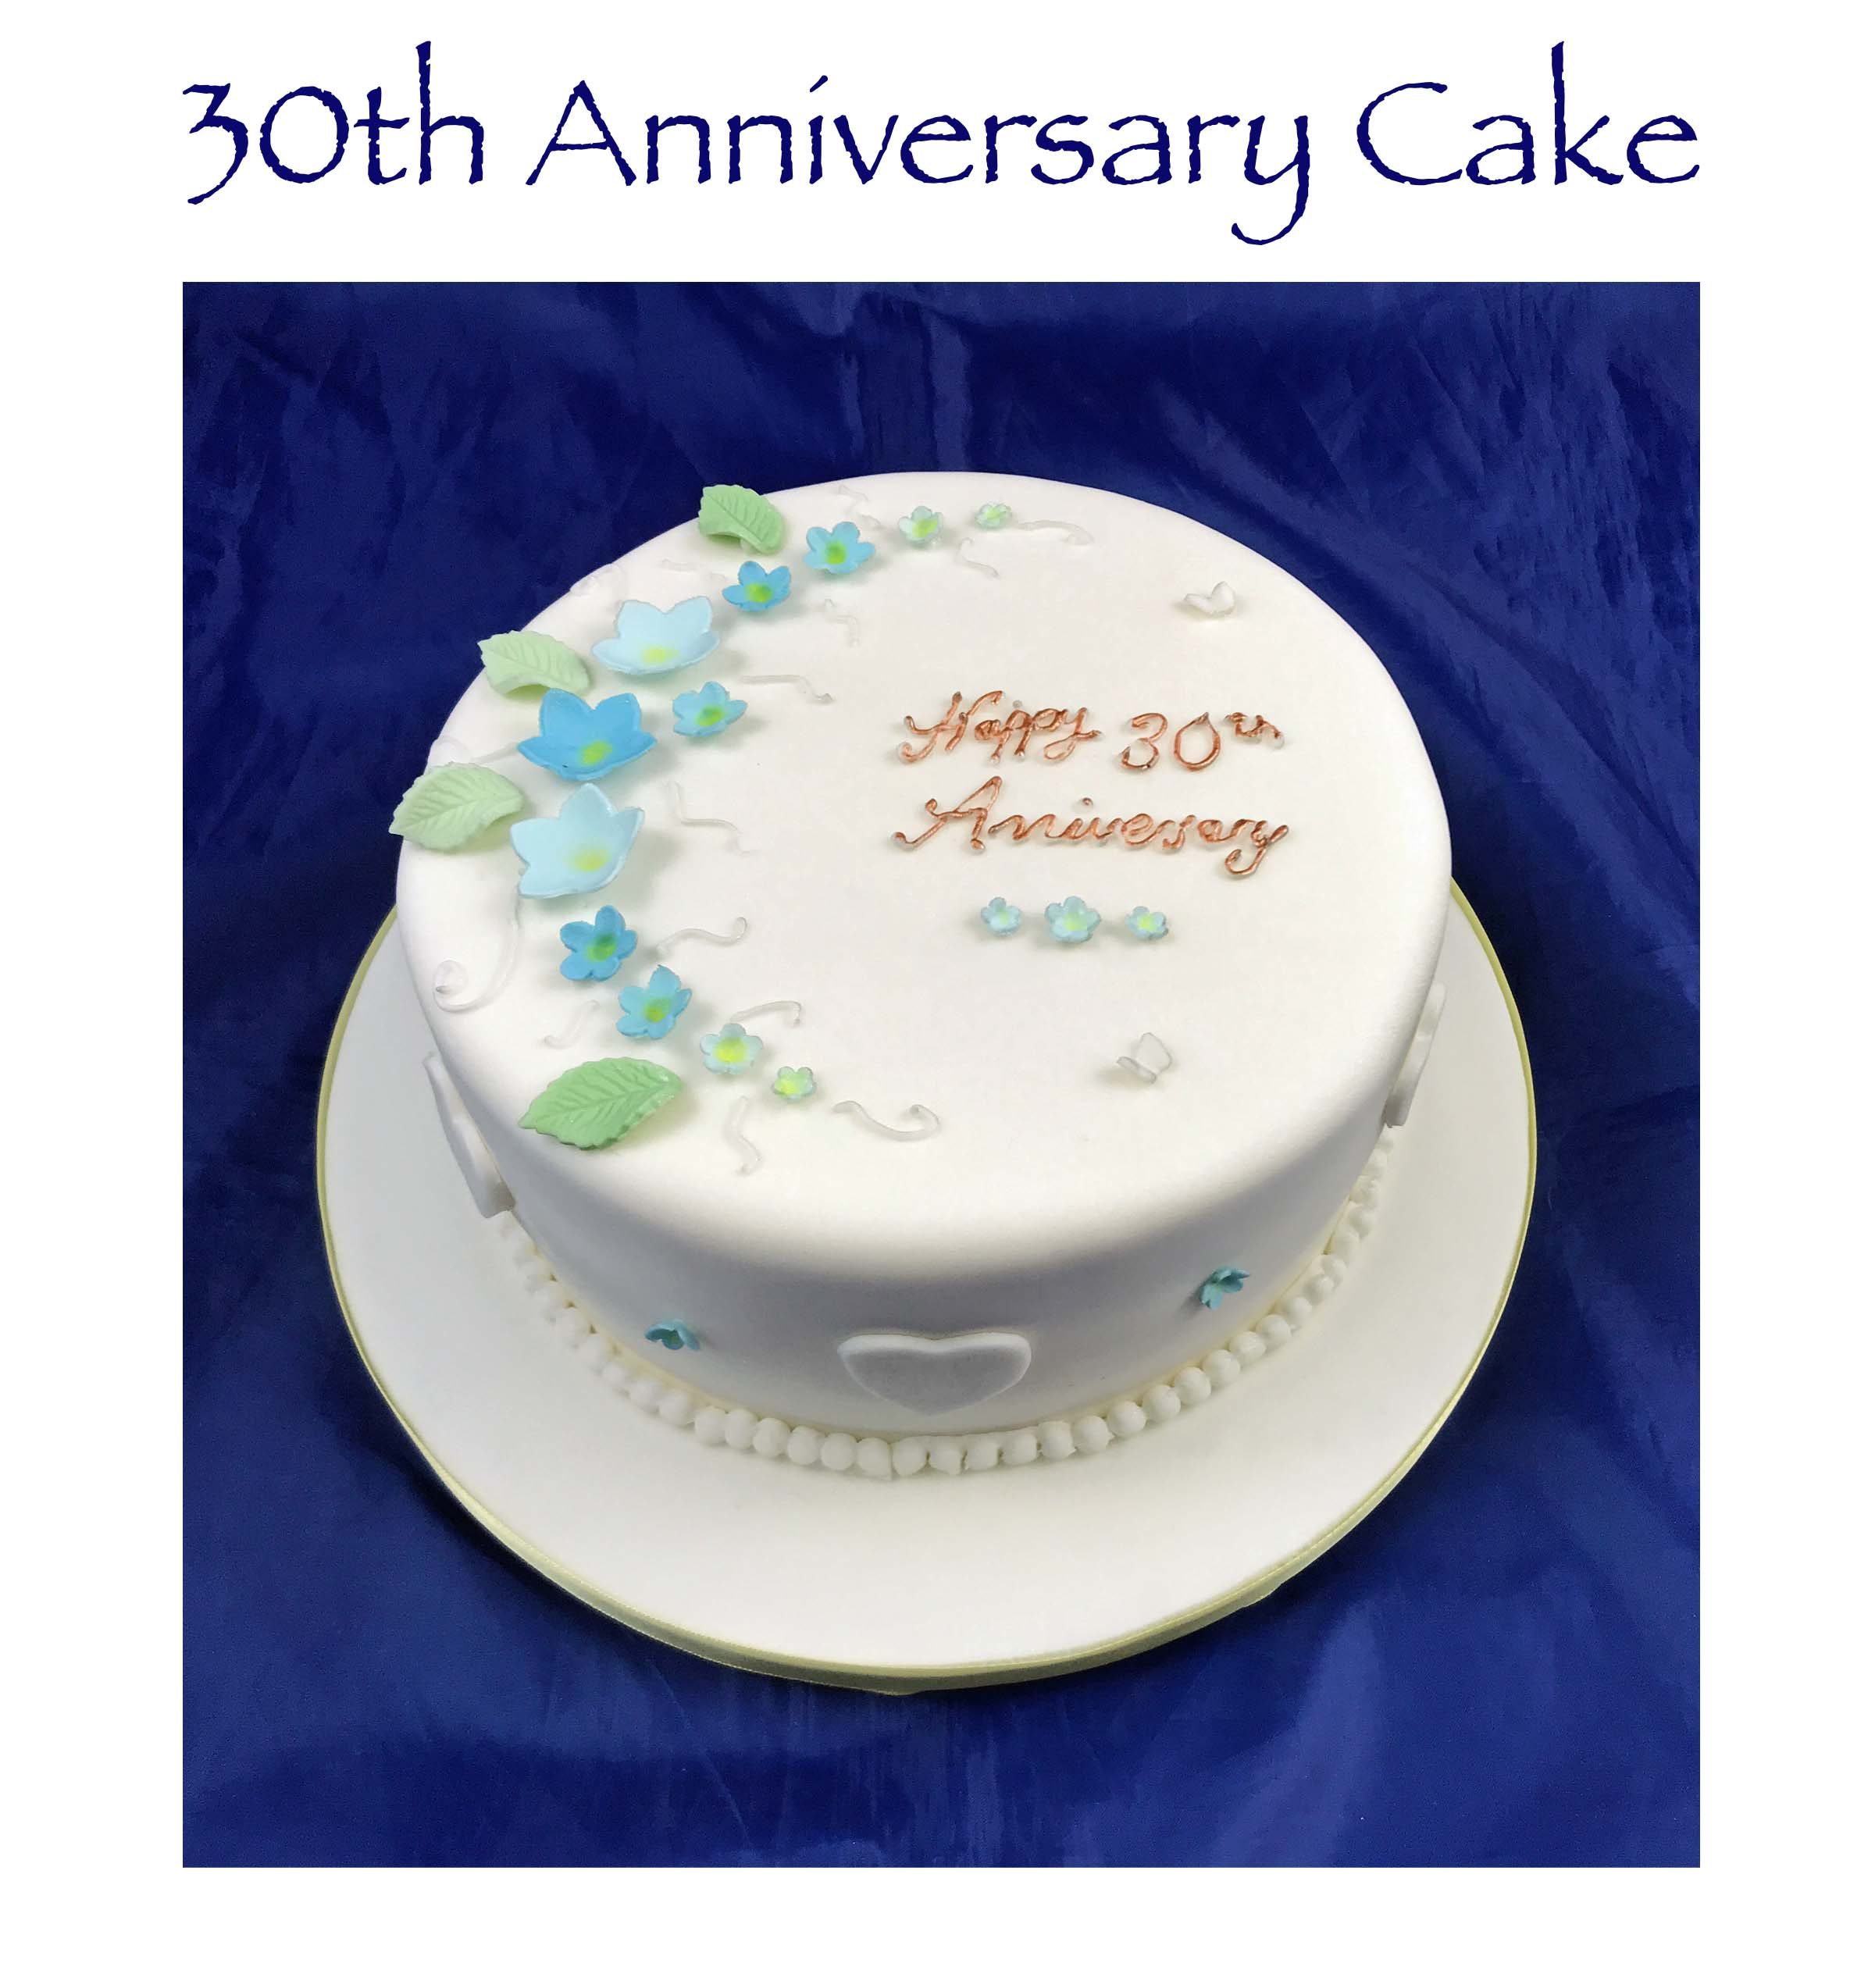 30th Anniversary Cake - forget me nots